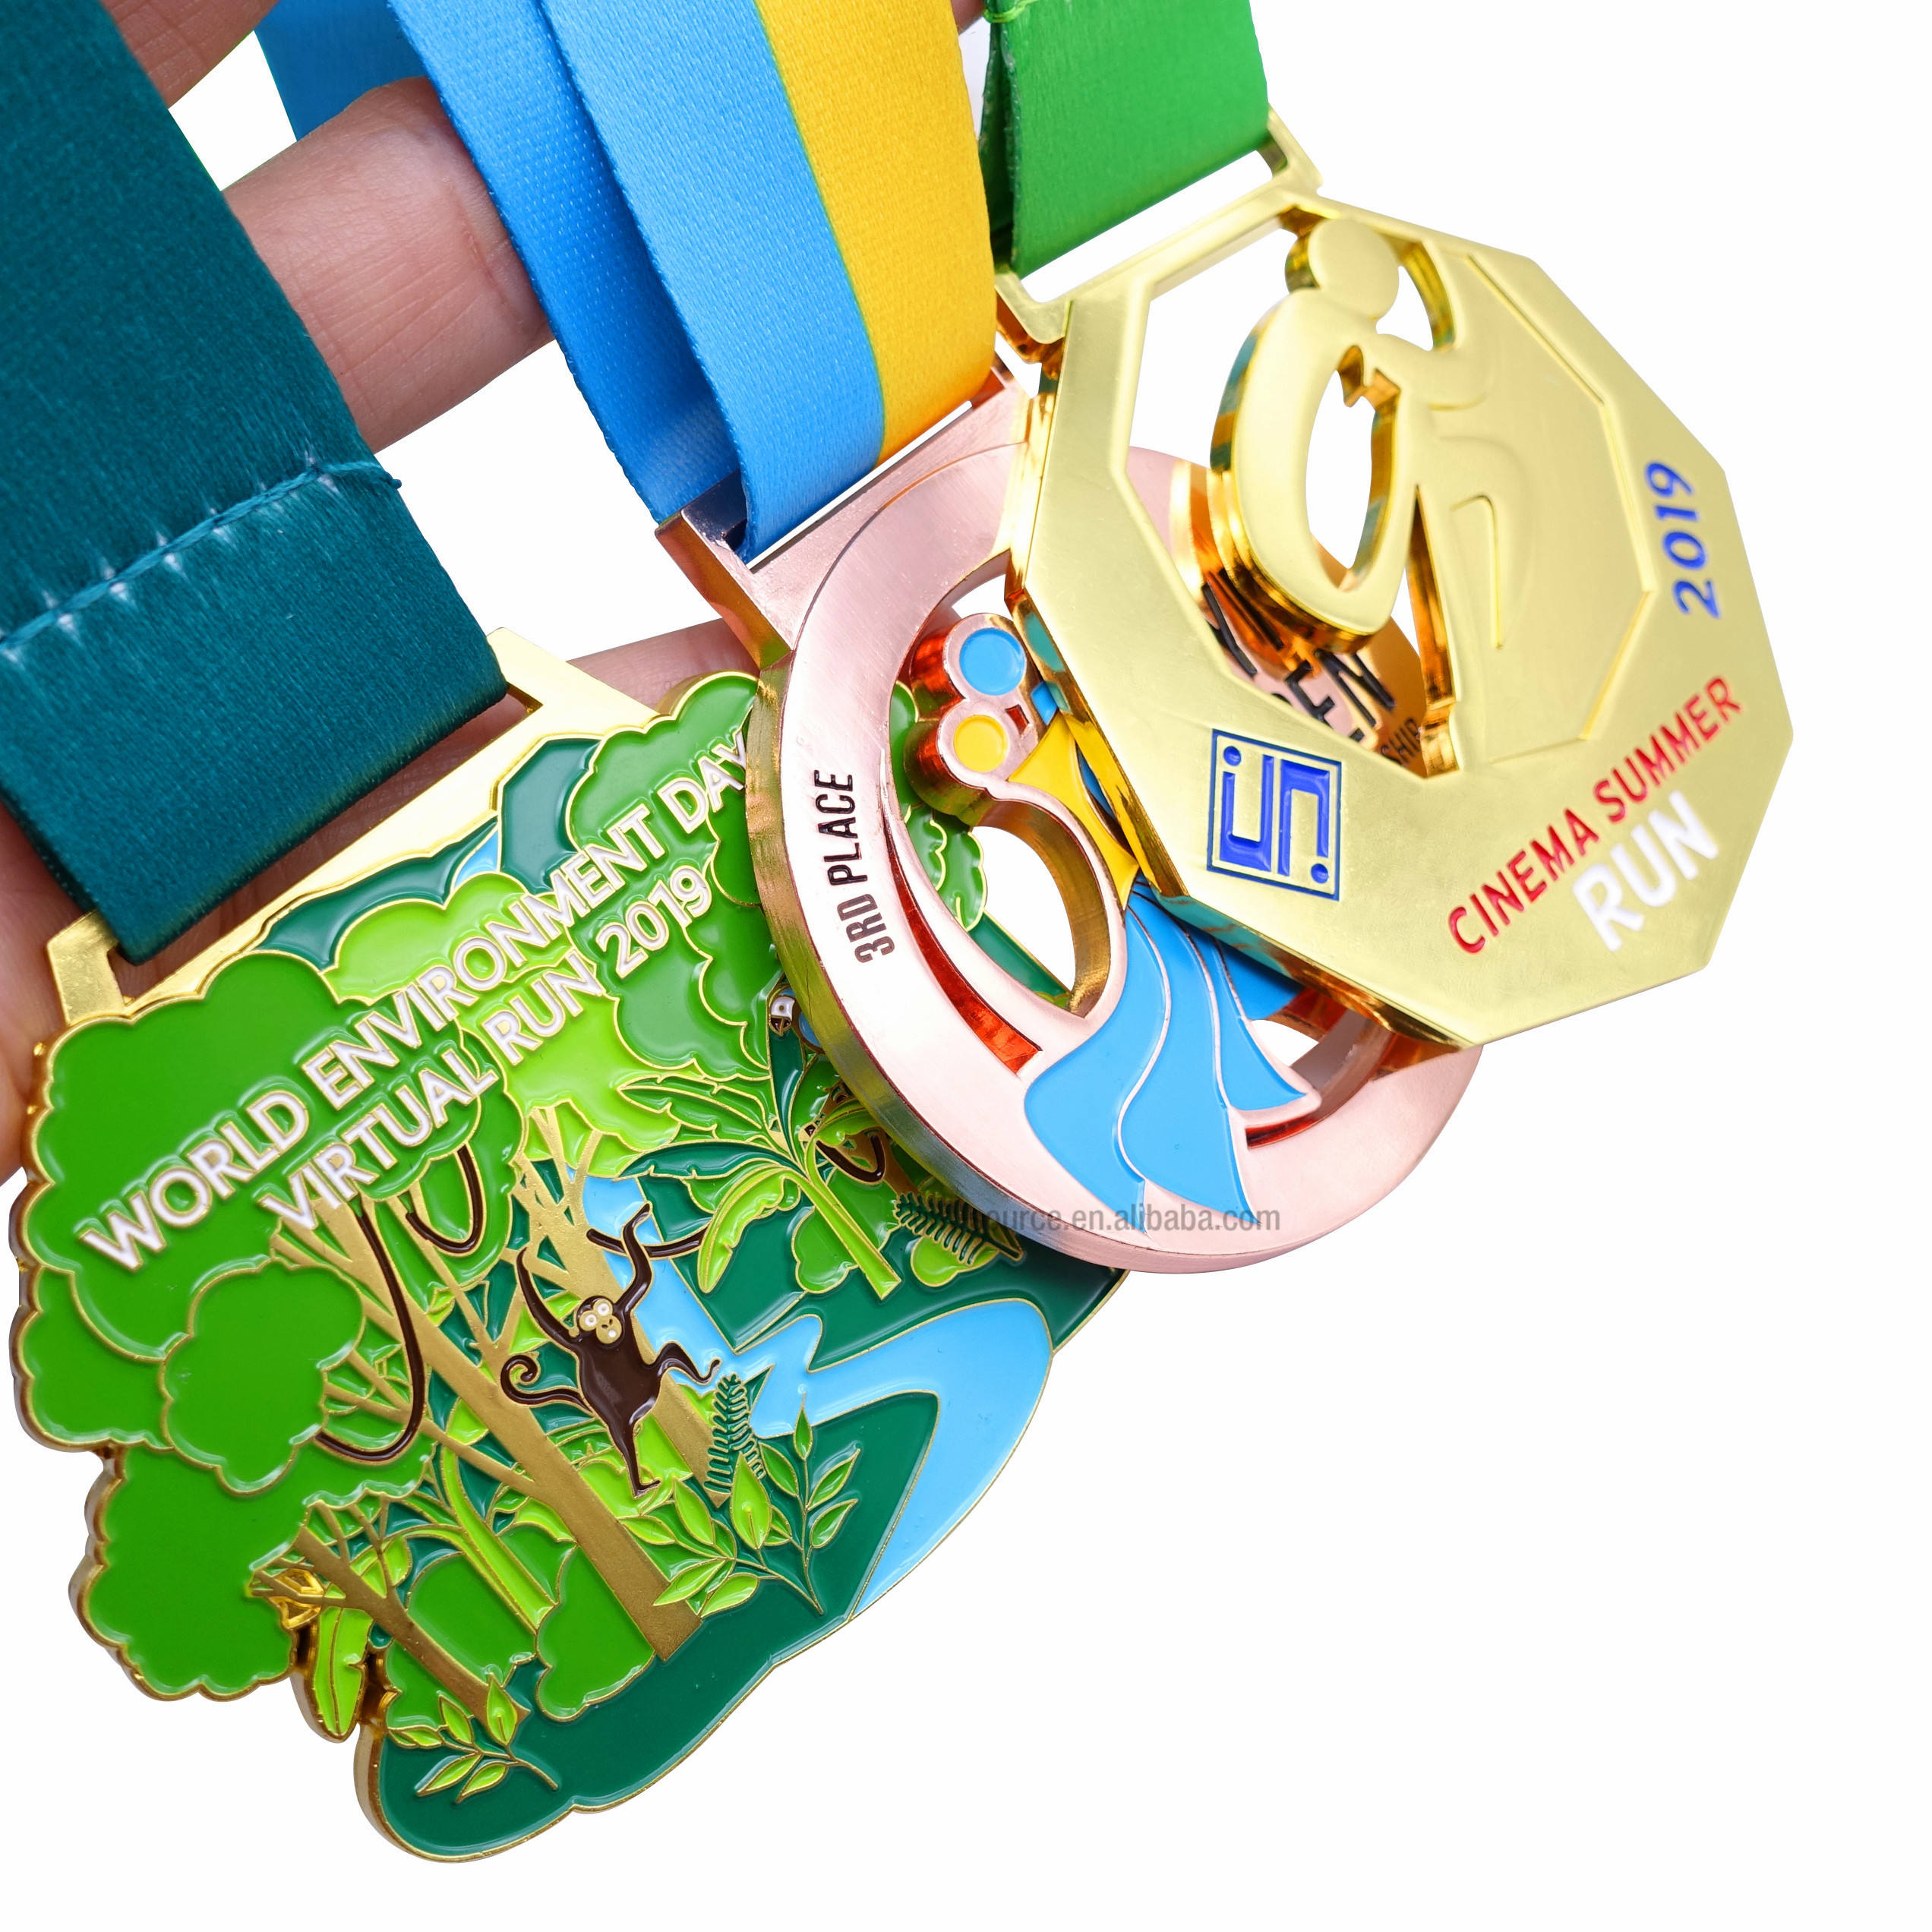 Custom bronze metal medal sports military soccer swimming spinning trophies and medals china,medals custom medal,metal medallion